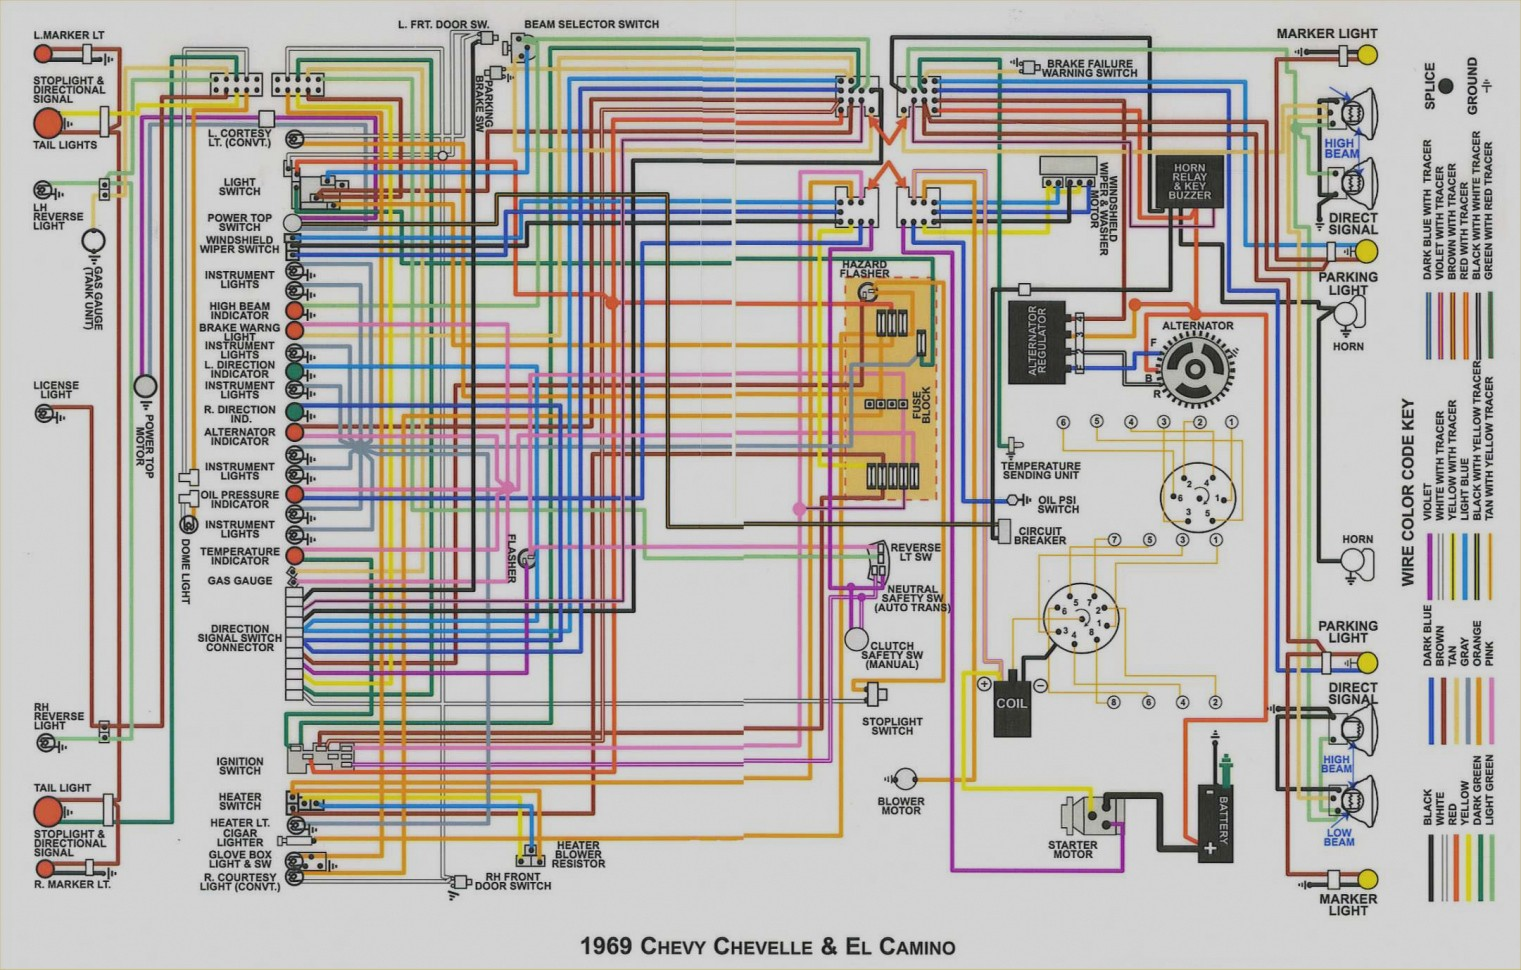 68 Chevy C10 Wiring Diagram - Trailer Plug Wiring Diagram 7 Way Flat for Wiring  Diagram SchematicsWiring Diagram Schematics